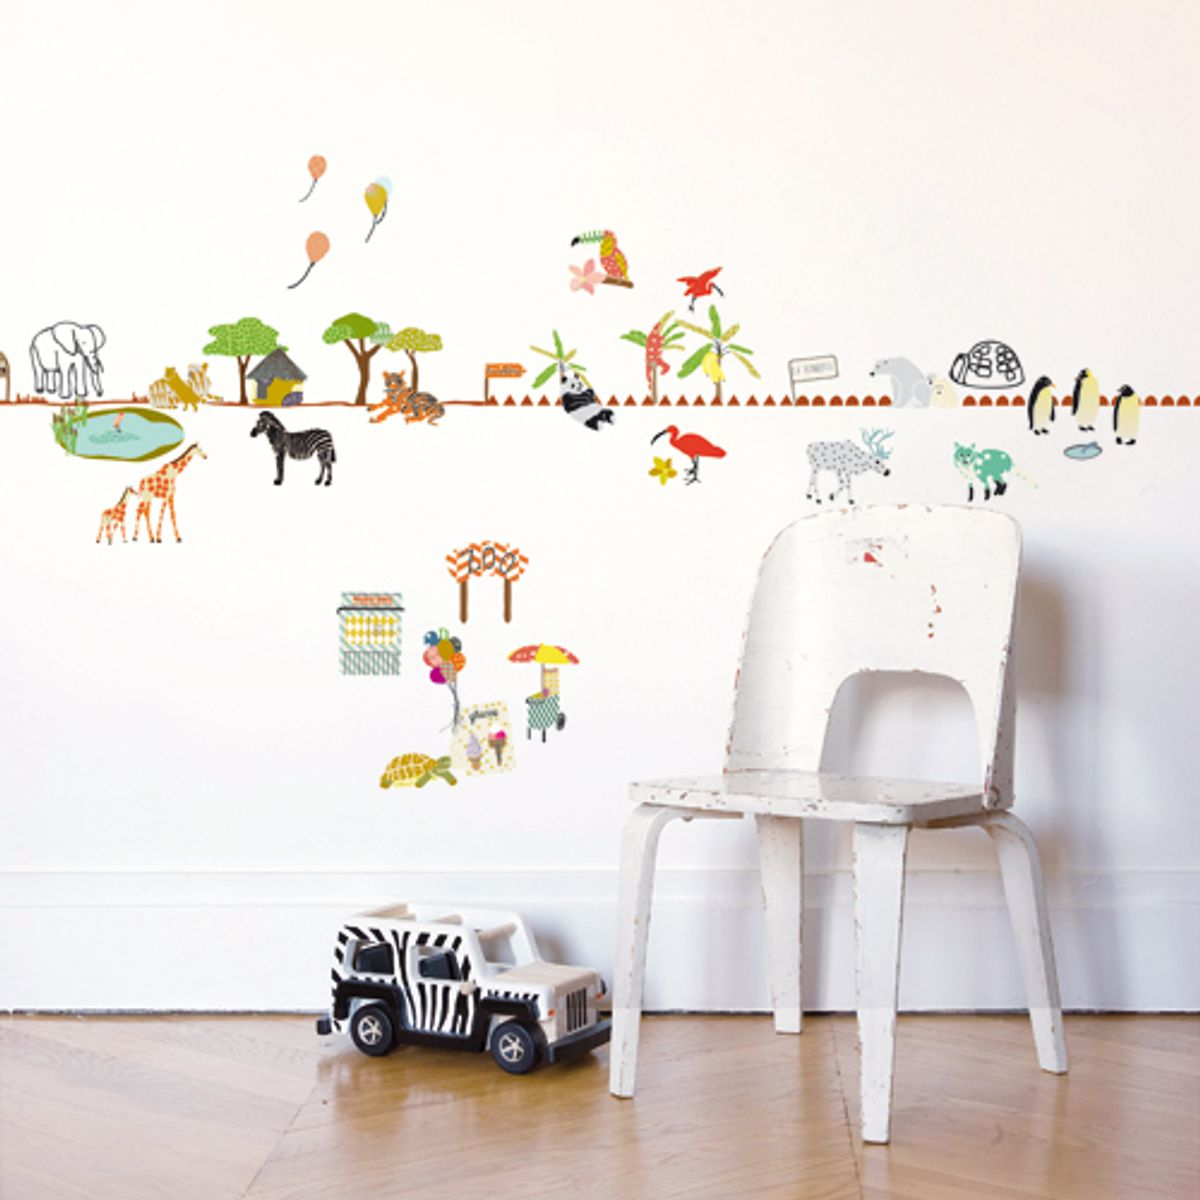 sticker frise murale pour enfant ballade au zoo mimi lou. Black Bedroom Furniture Sets. Home Design Ideas